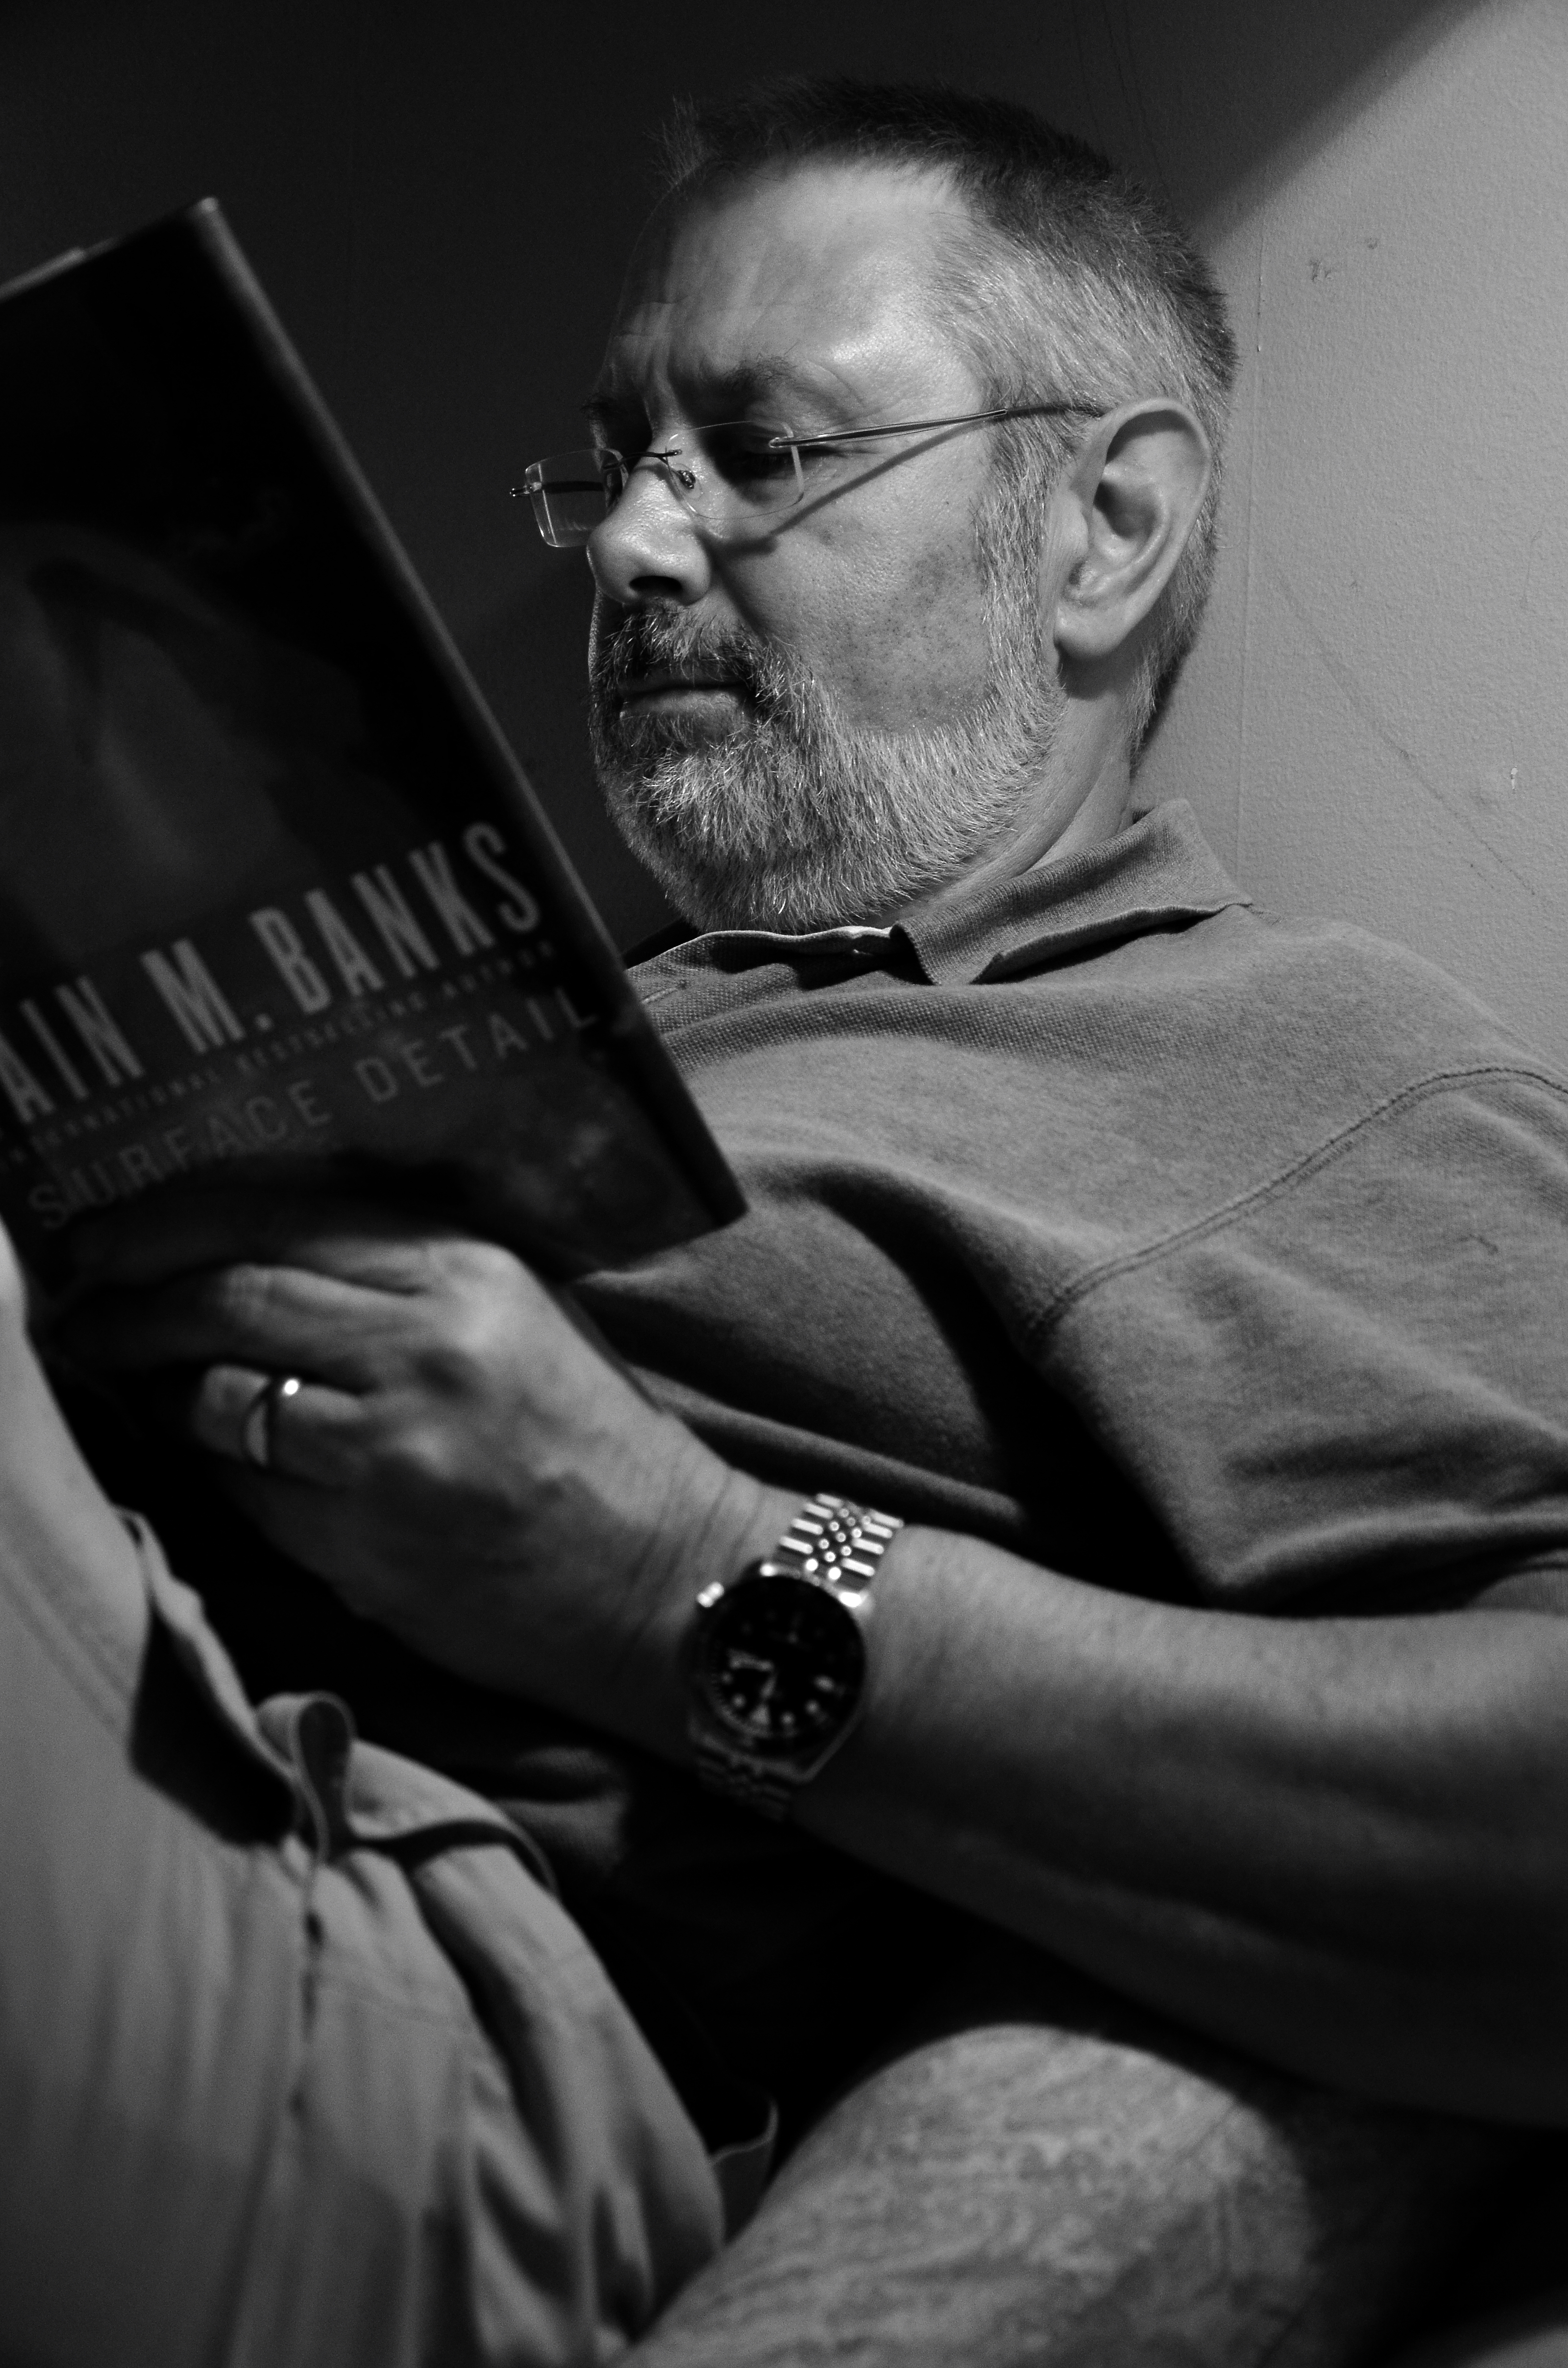 Reading before bed by Gary Allman